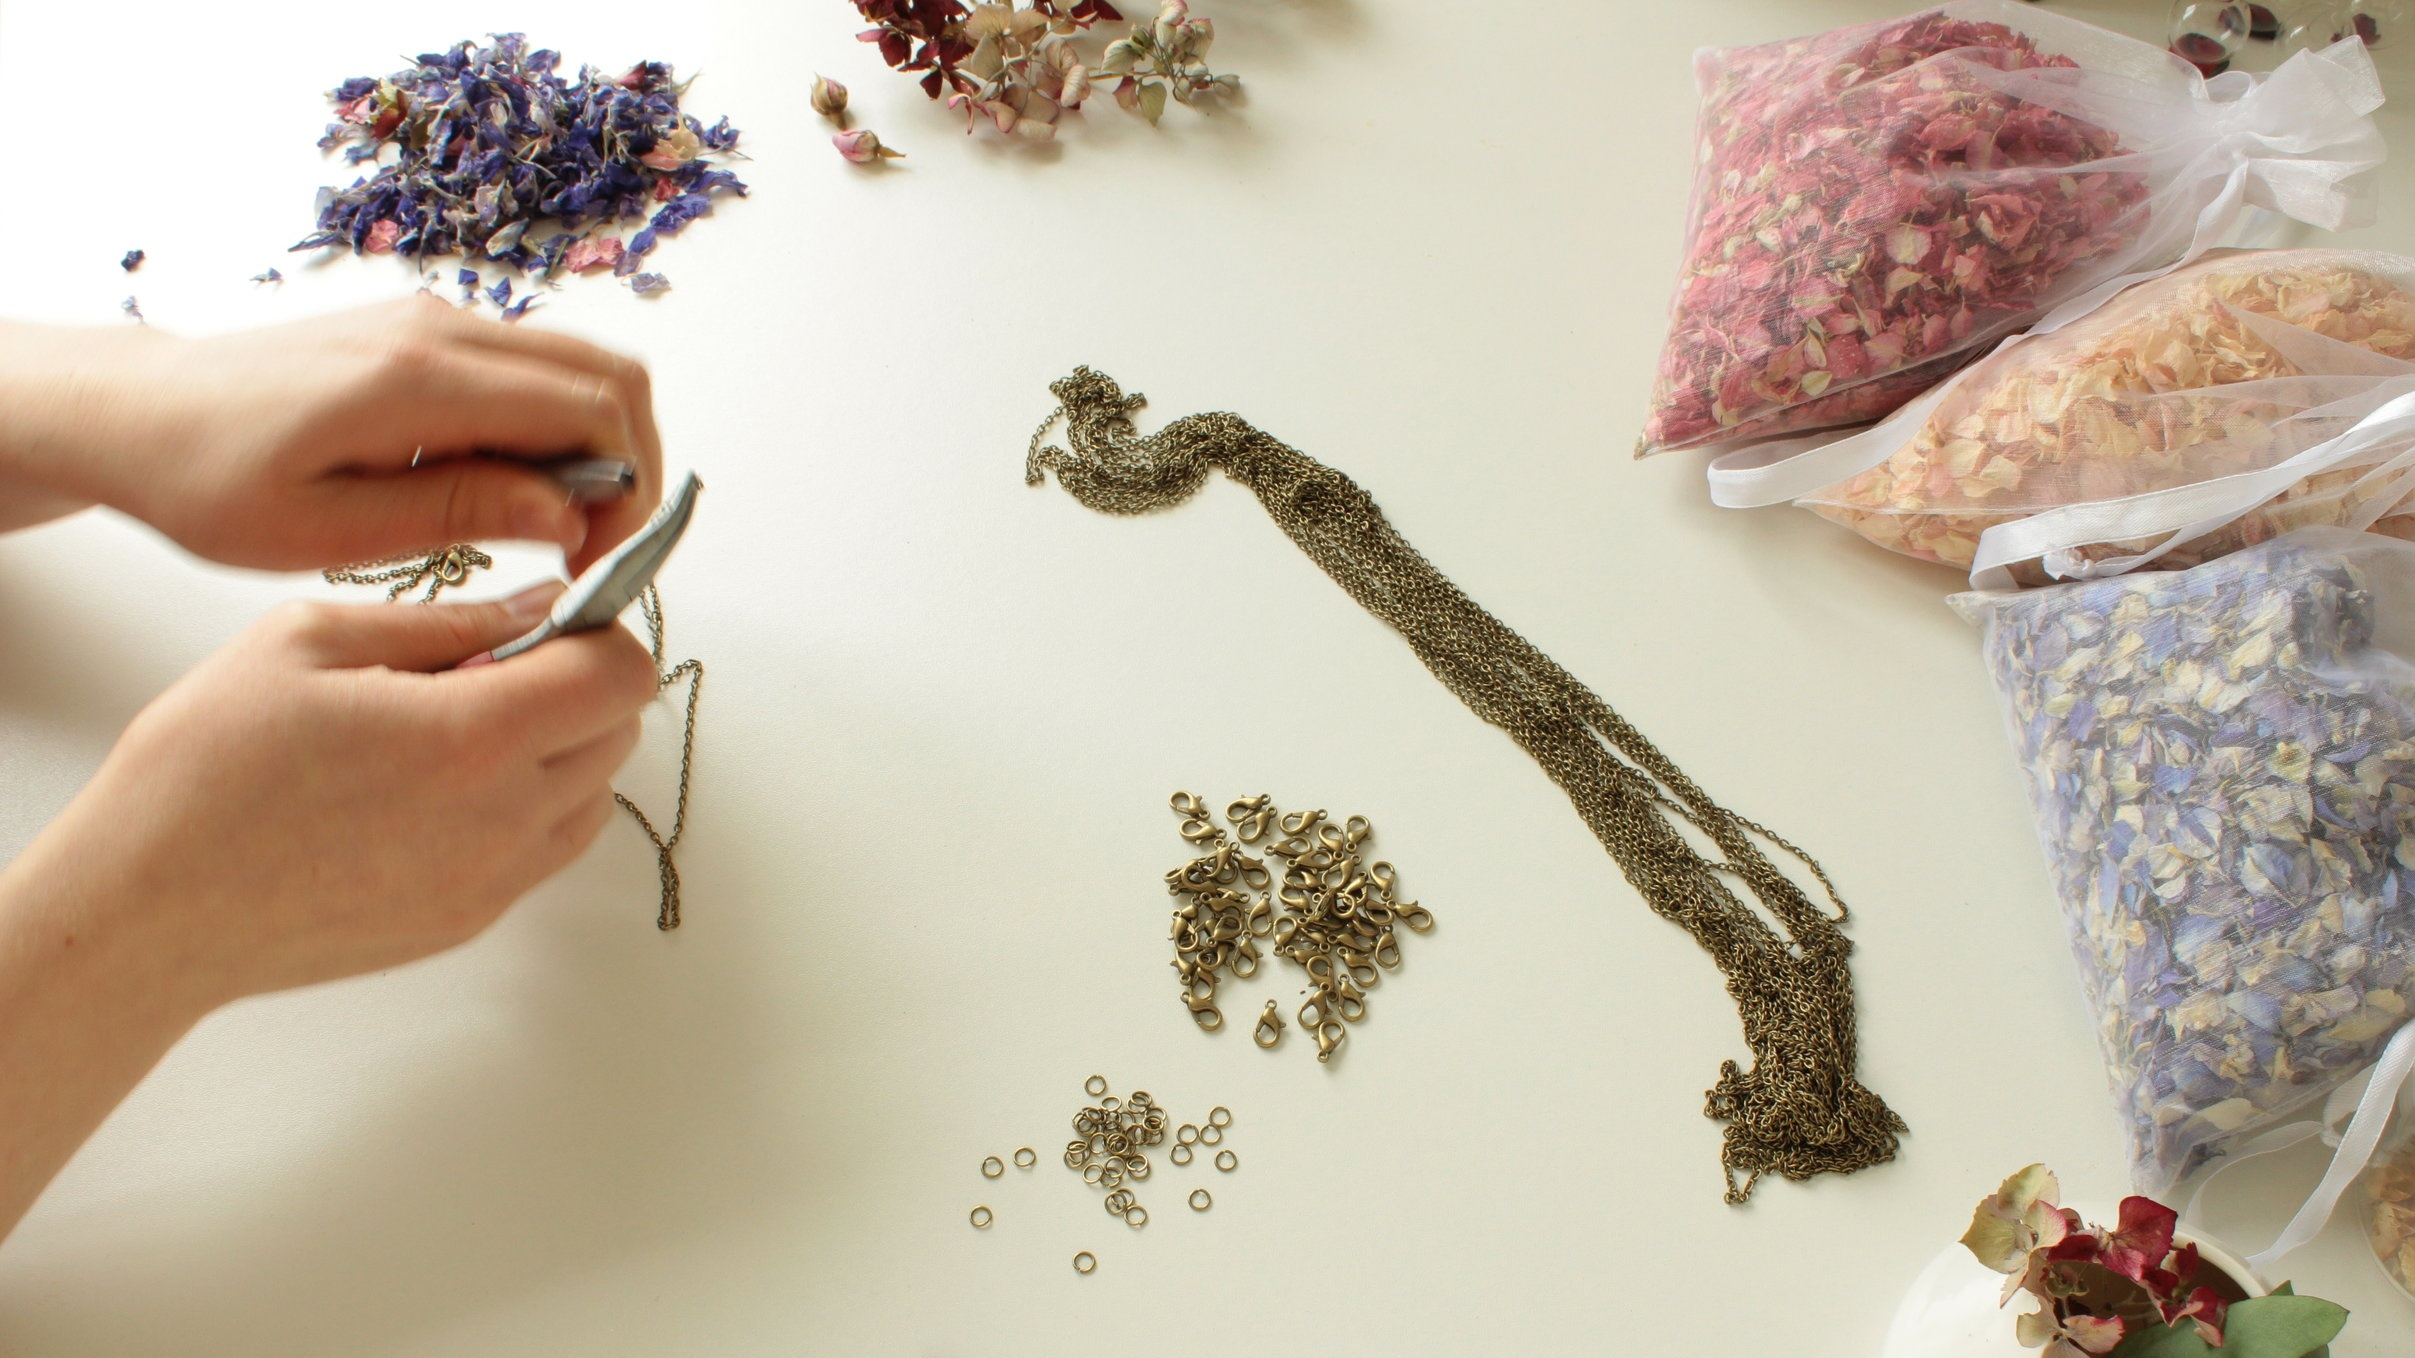 Your jewellery repairs - Lizzy can repair your items as she handcrafts your pieces